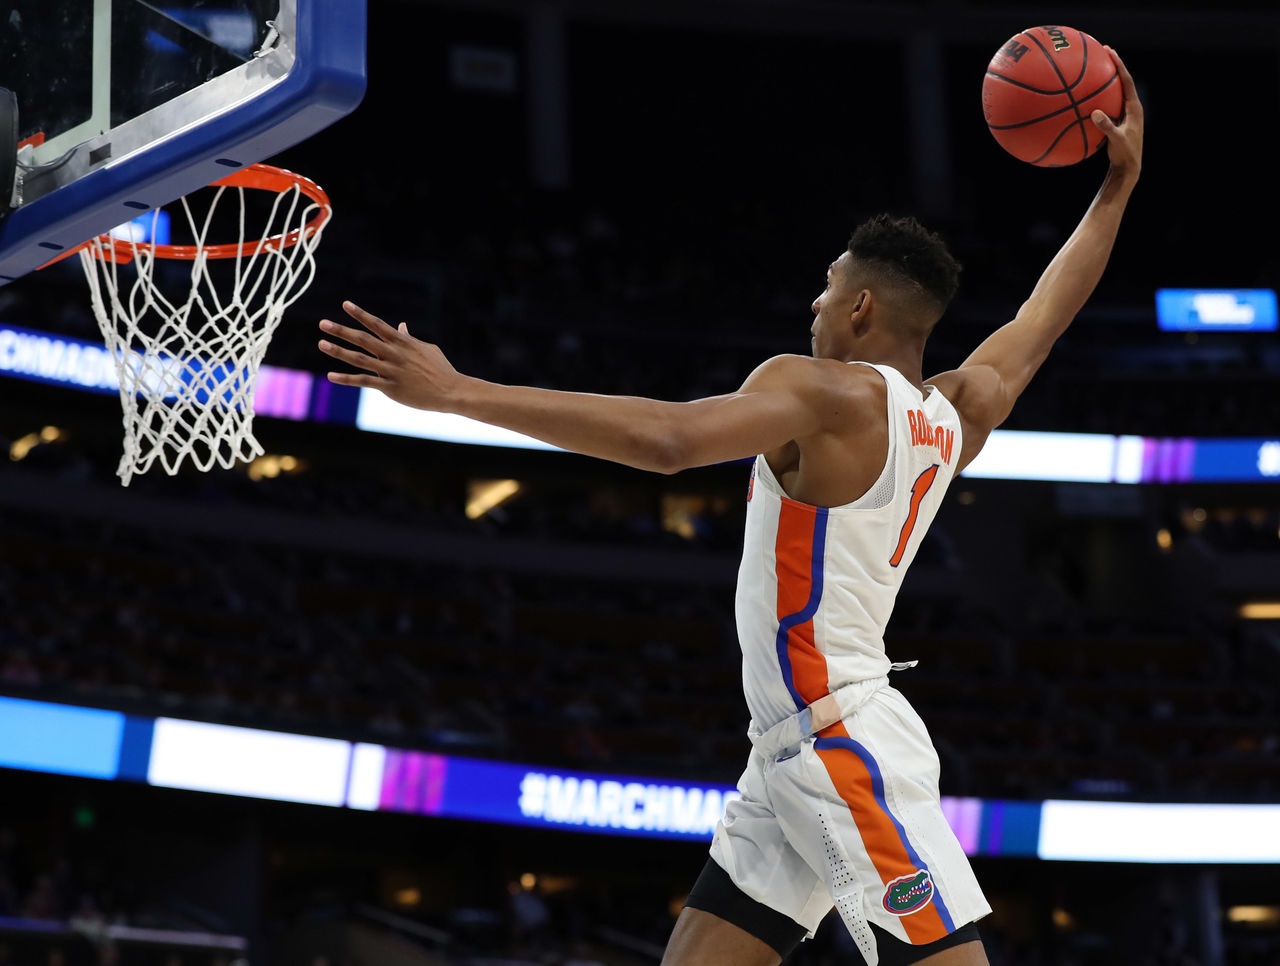 Cropped 2017 03 16t193823z 1524673185 nocid rtrmadp 3 ncaa basketball ncaa tournament first round florida vs east tennessee state